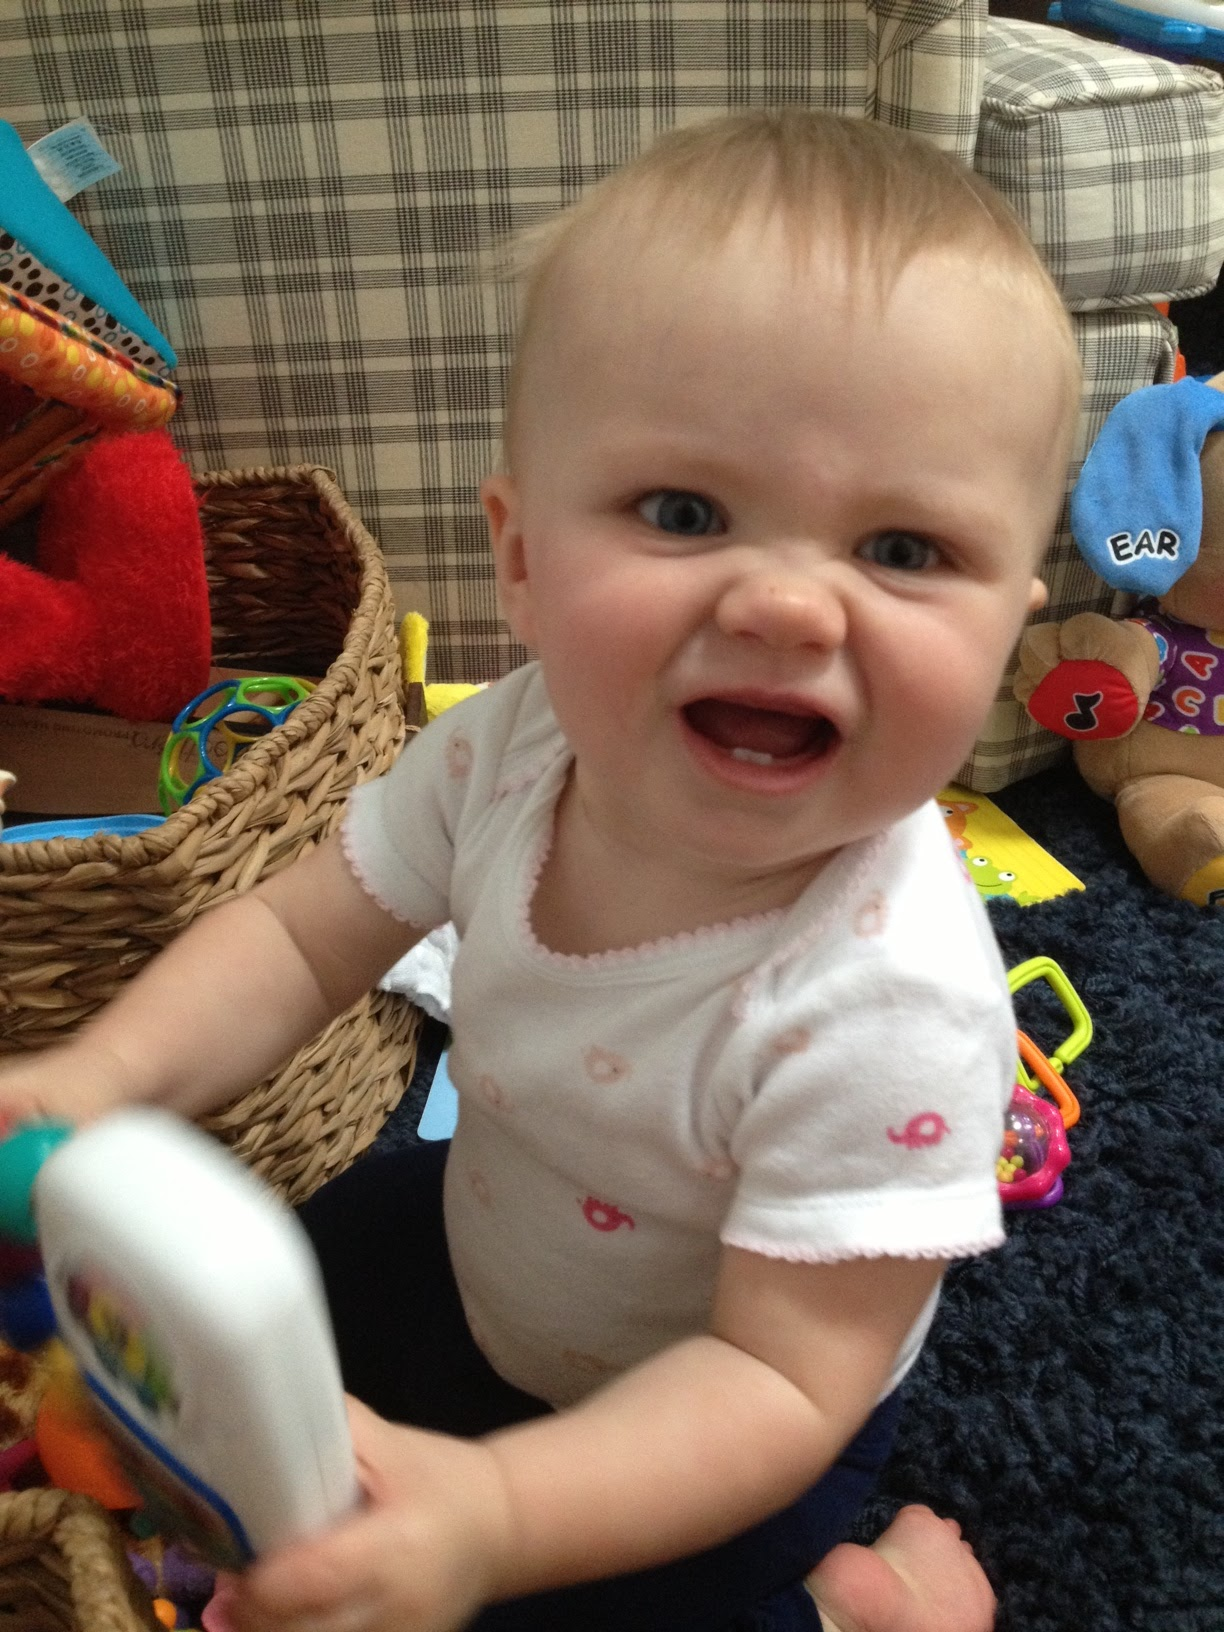 Funny Baby Faces With Funny Captions Chloe funny face 2 jpgFunny Baby Faces With Captions